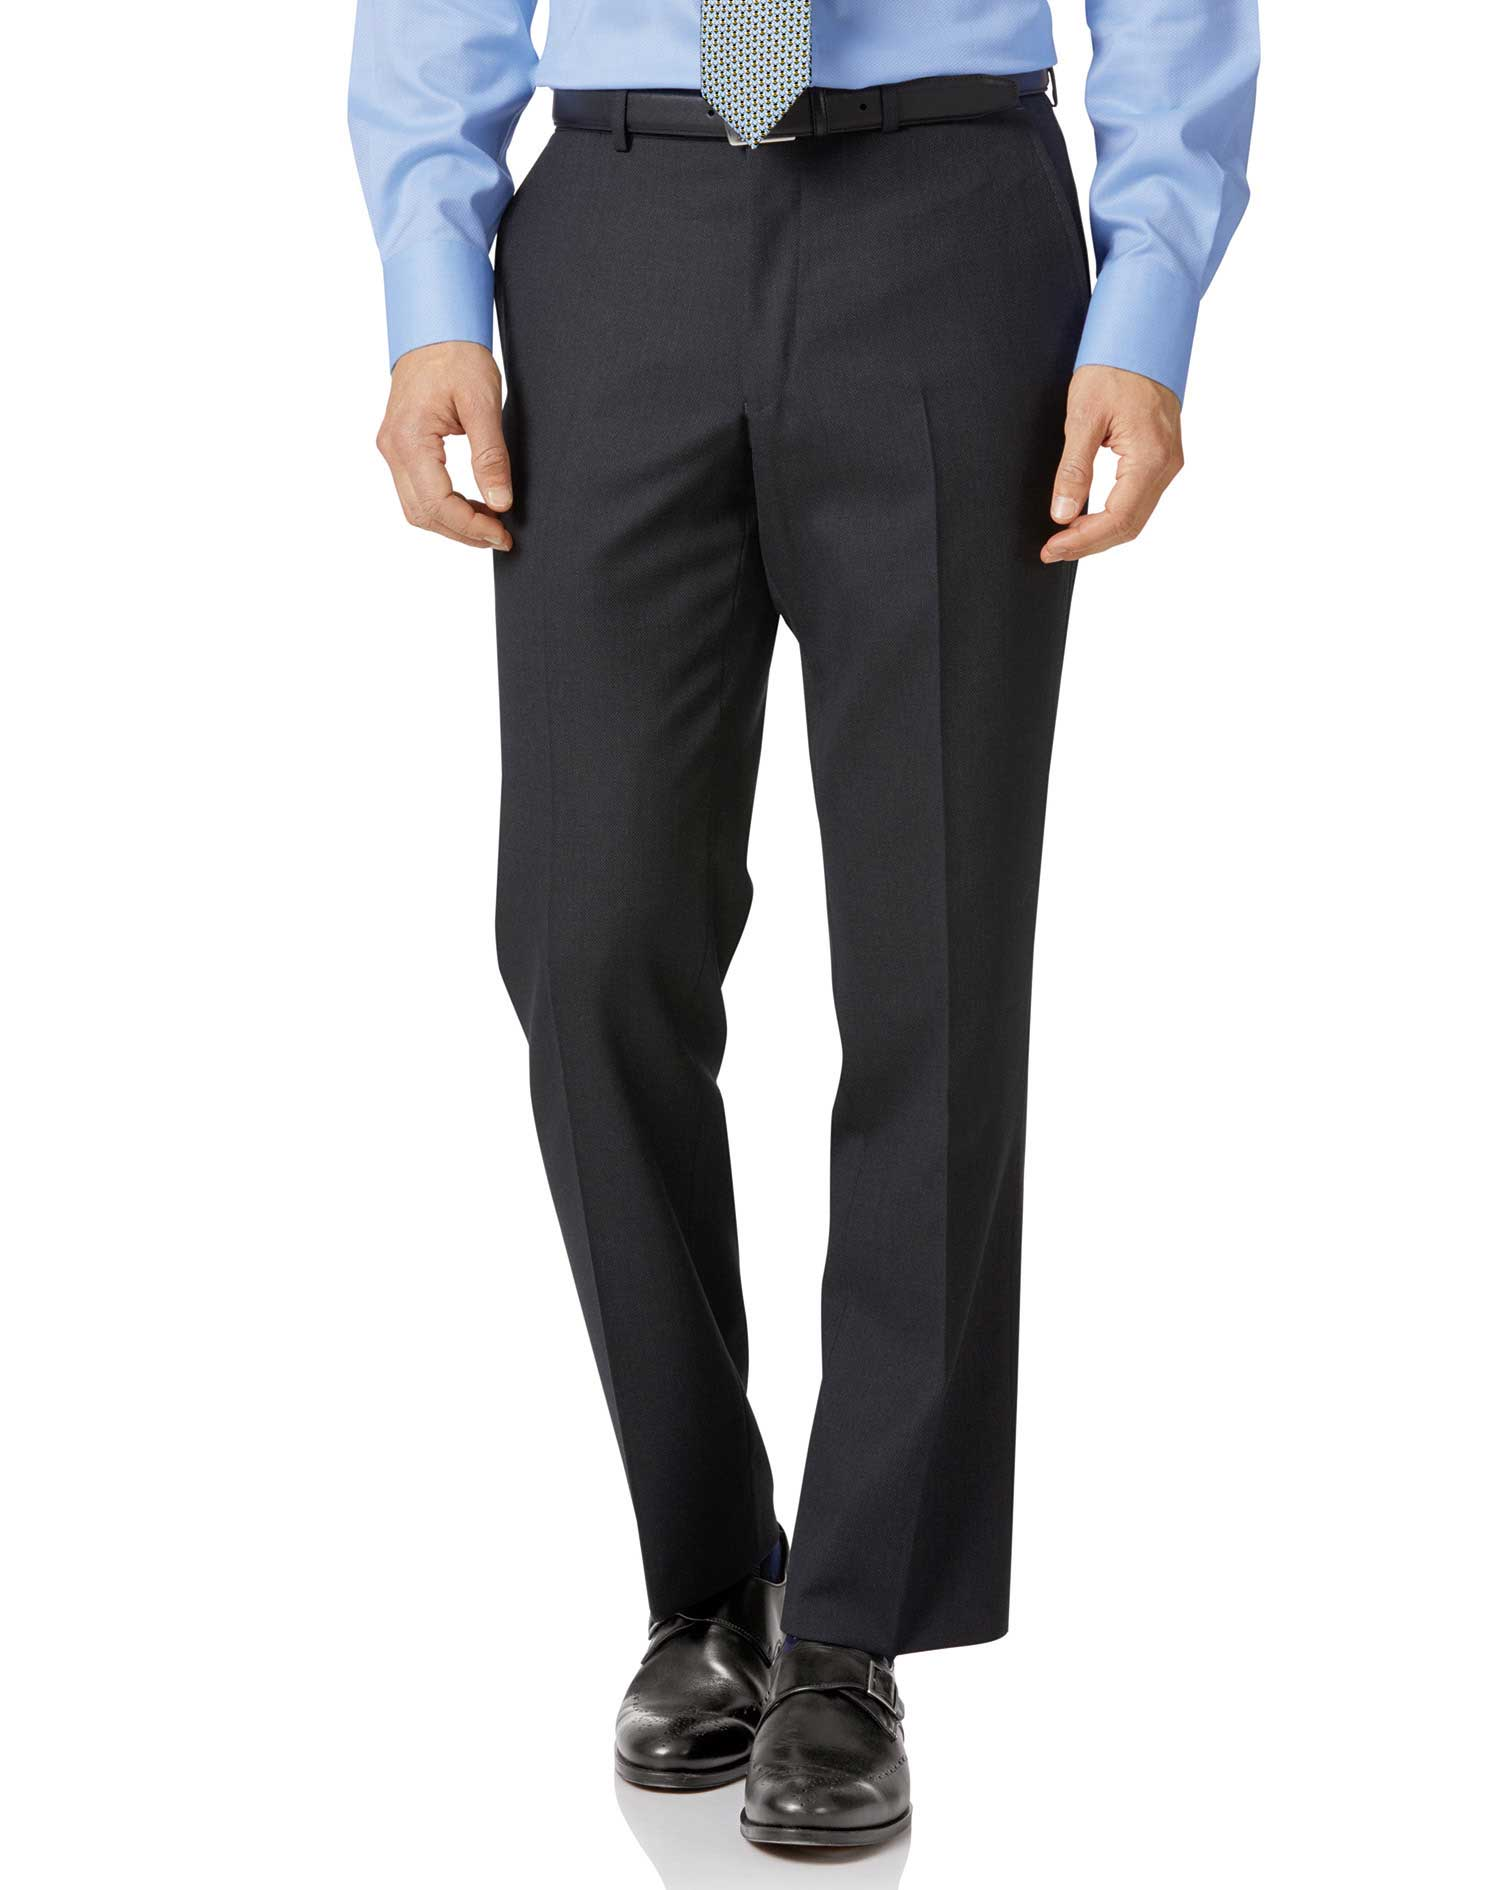 Charcoal Classic Fit Birdseye Travel Suit Trousers Size W34 L38 by Charles Tyrwhitt